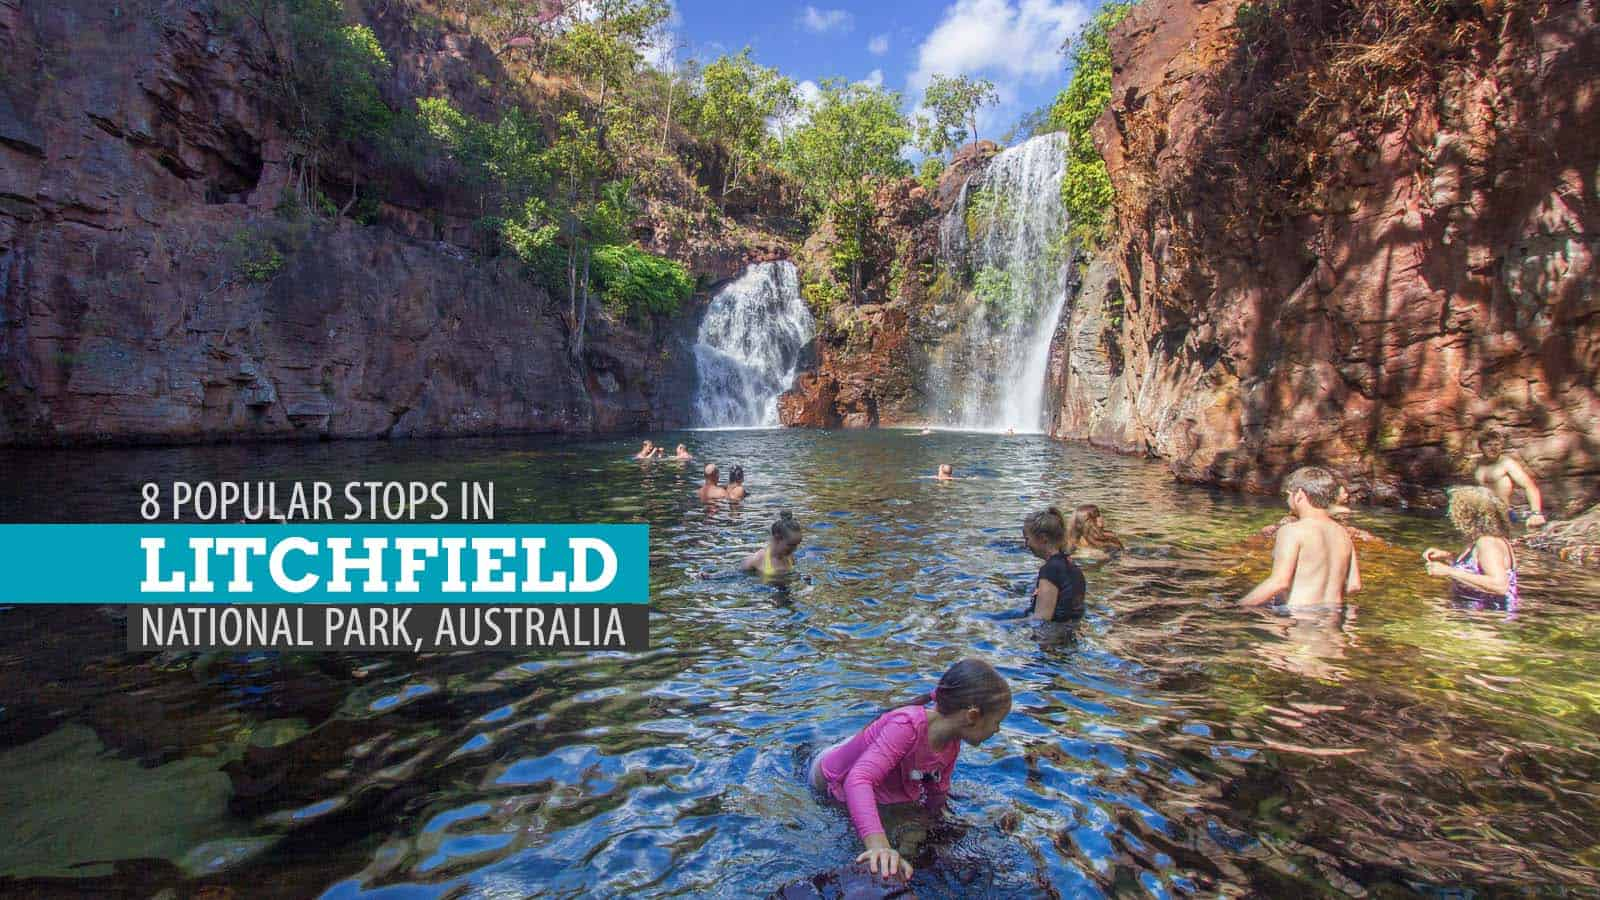 8 Popular Stops in Litchfield National Park, Australia: A Day Tour Itinerary